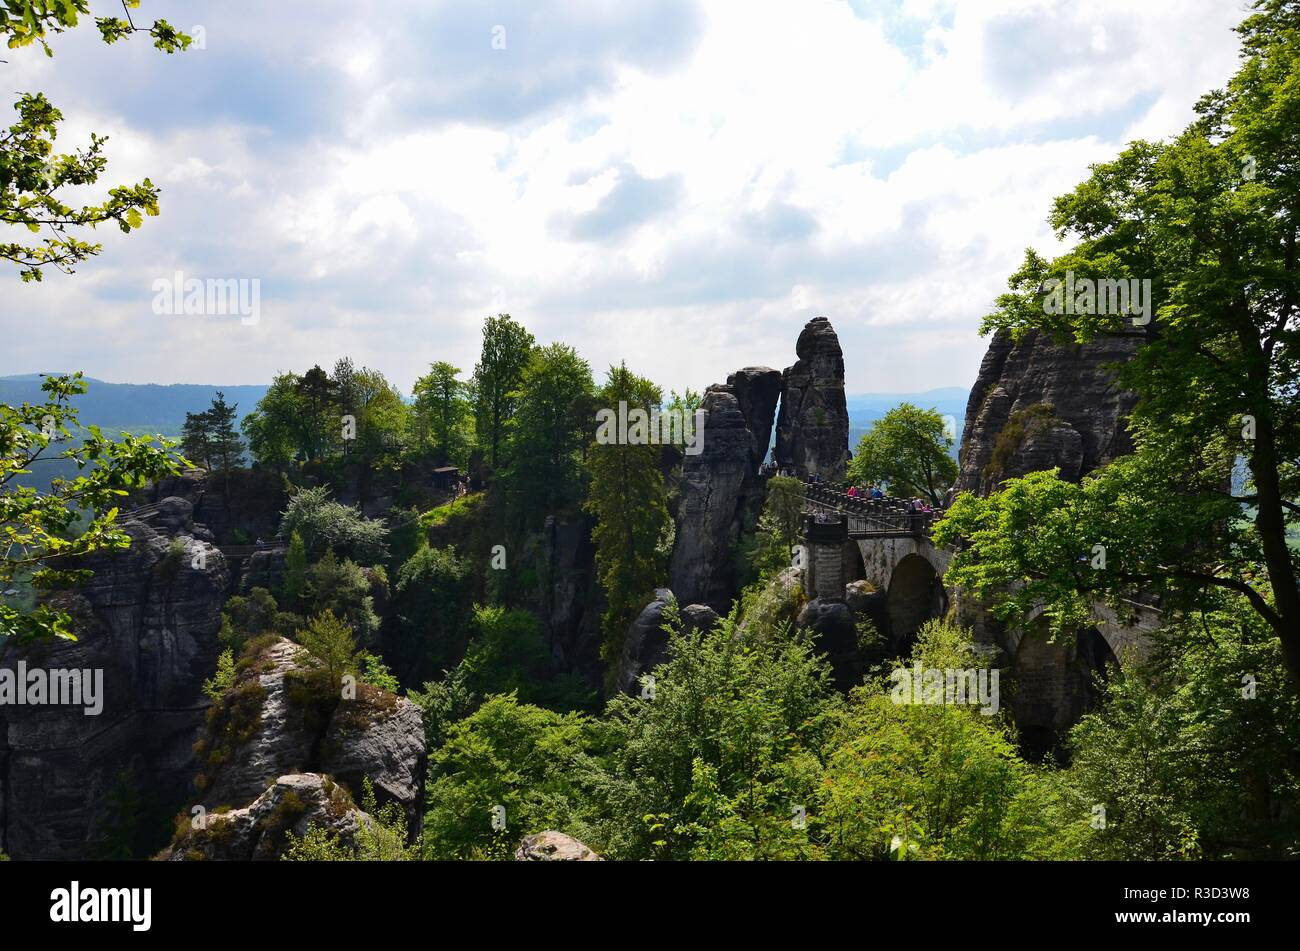 The mountain range Elbe Sandstone Mountains (Elbsandsteingebirge) near the town of Rathen in Saxony in Germany, people crossing the old bastion bridge Stock Photo